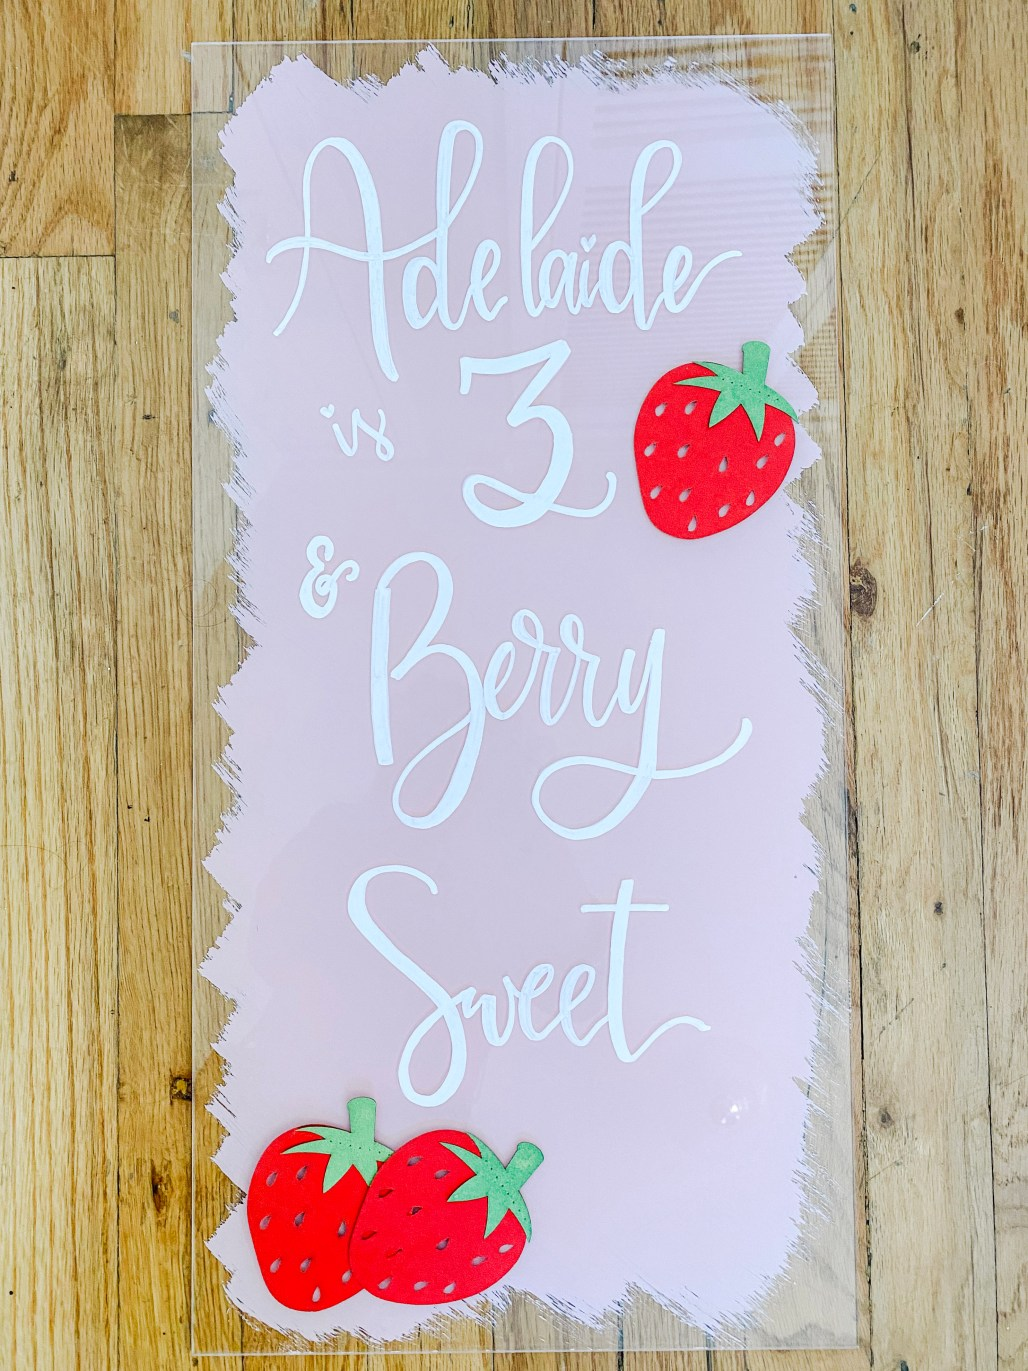 At Home Entertaining :: A New Season of Celebrating Life's Moments ... Strawberry Patch 3rd Birthday || Dreamery Events